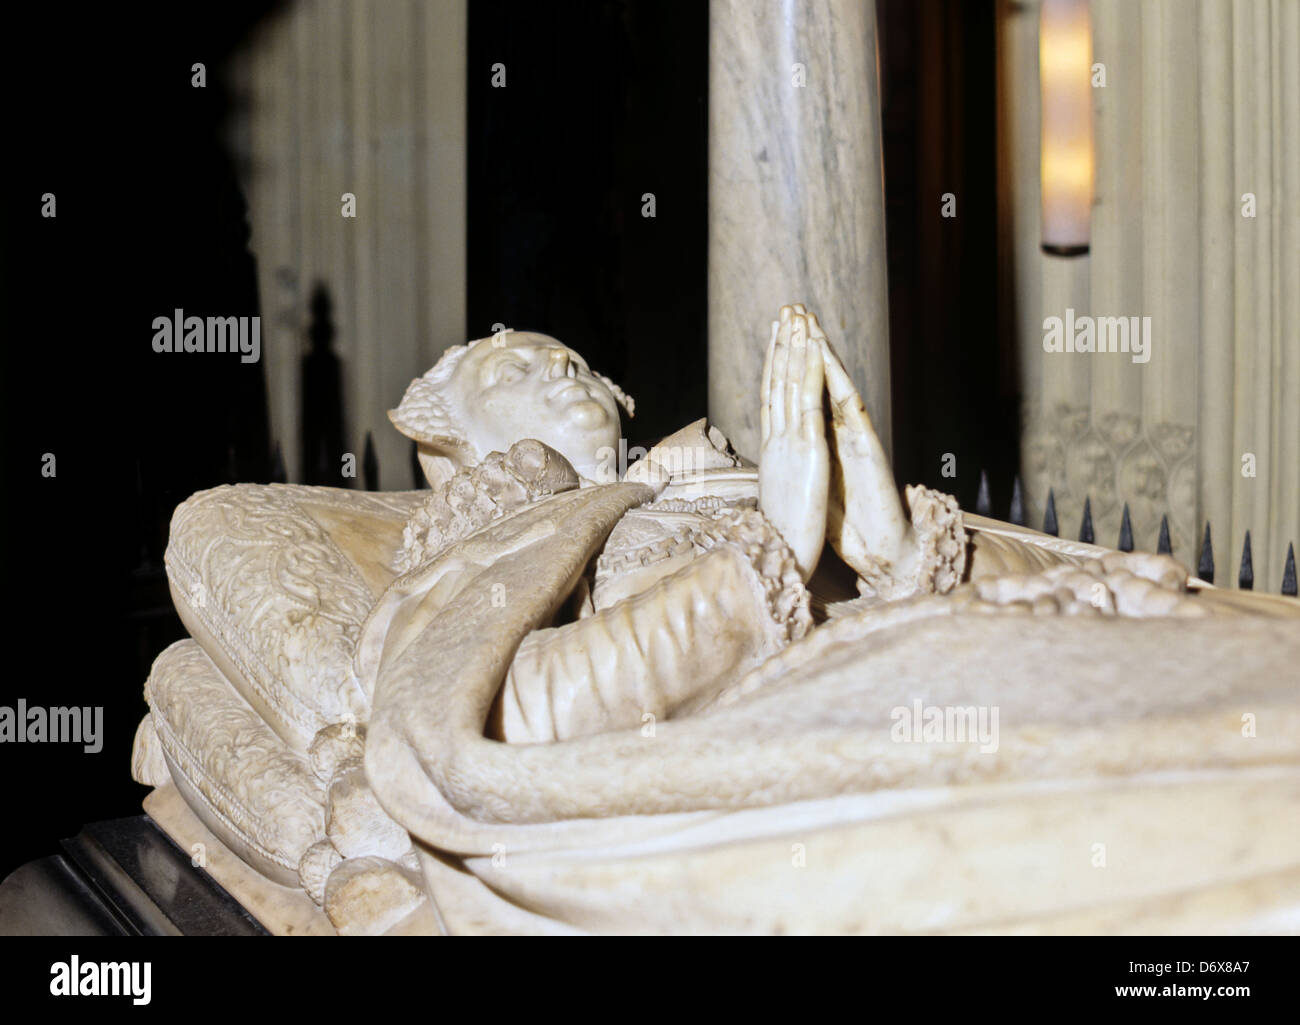 8617. Tomb of Mary Queen of Scots, Westminster Abbey, London, UK - Stock Image